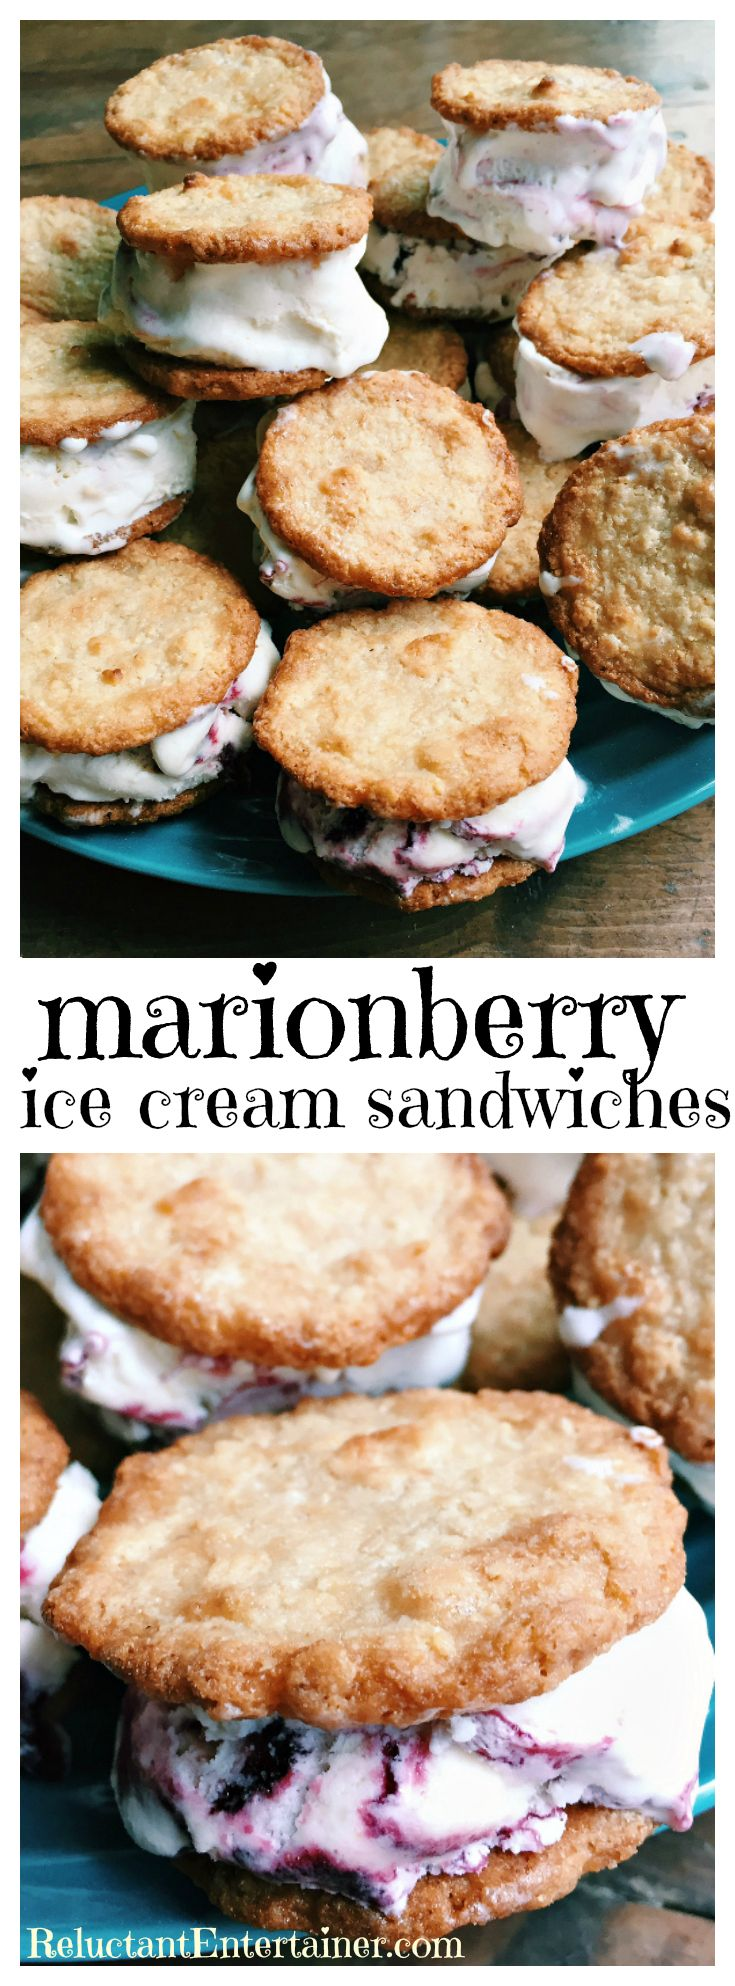 Marionberry Ice Cream Sandwiches - freeze and serve for drop-in summer guests | ReluctantEntertainer.com